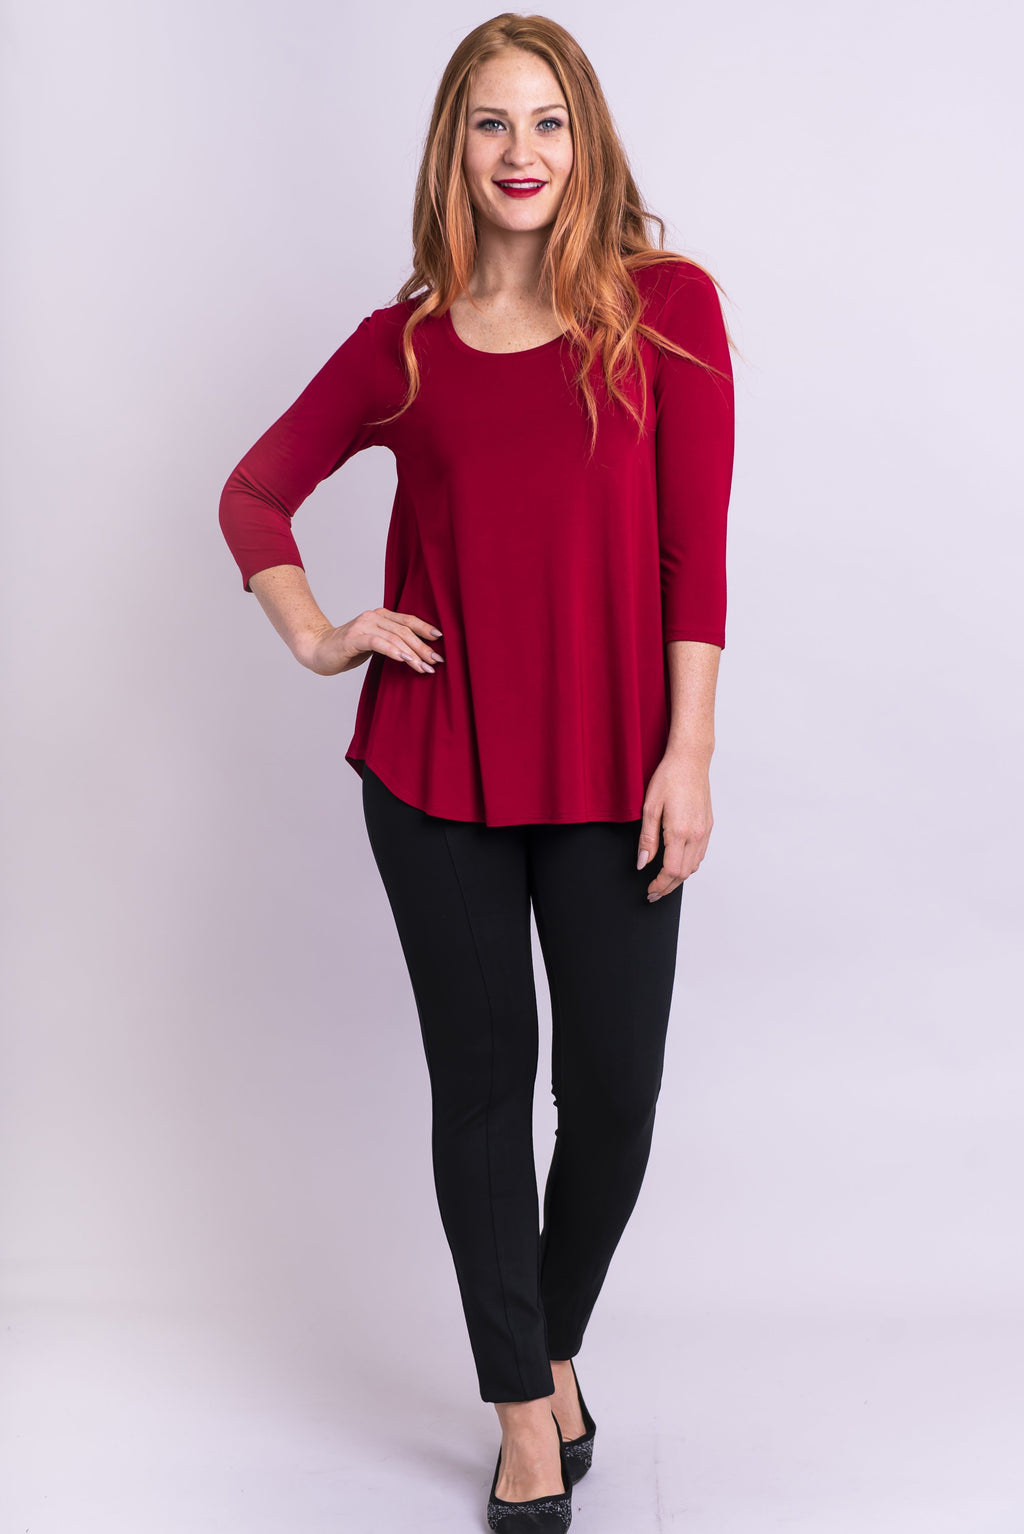 Jazz 3/4 Slv Top, Lipstick, Bamboo - Blue Sky Clothing Co